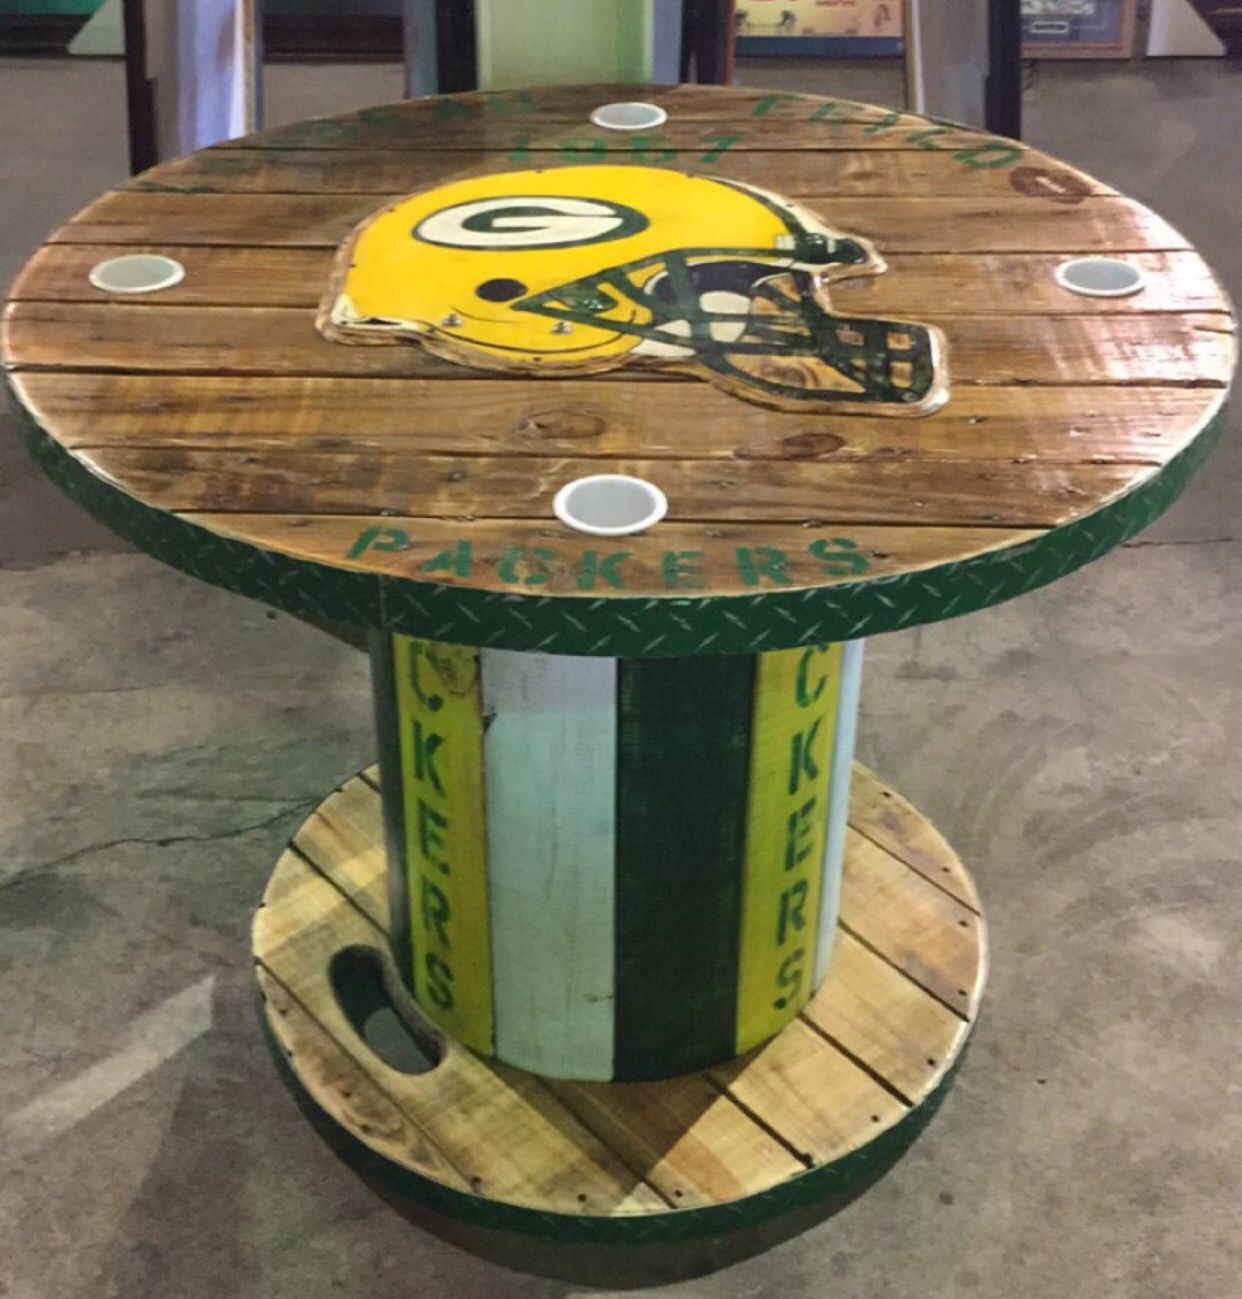 Wooden Spool Green Bay Packers Table Wooden Spools Wooden Chicken And Vegetables